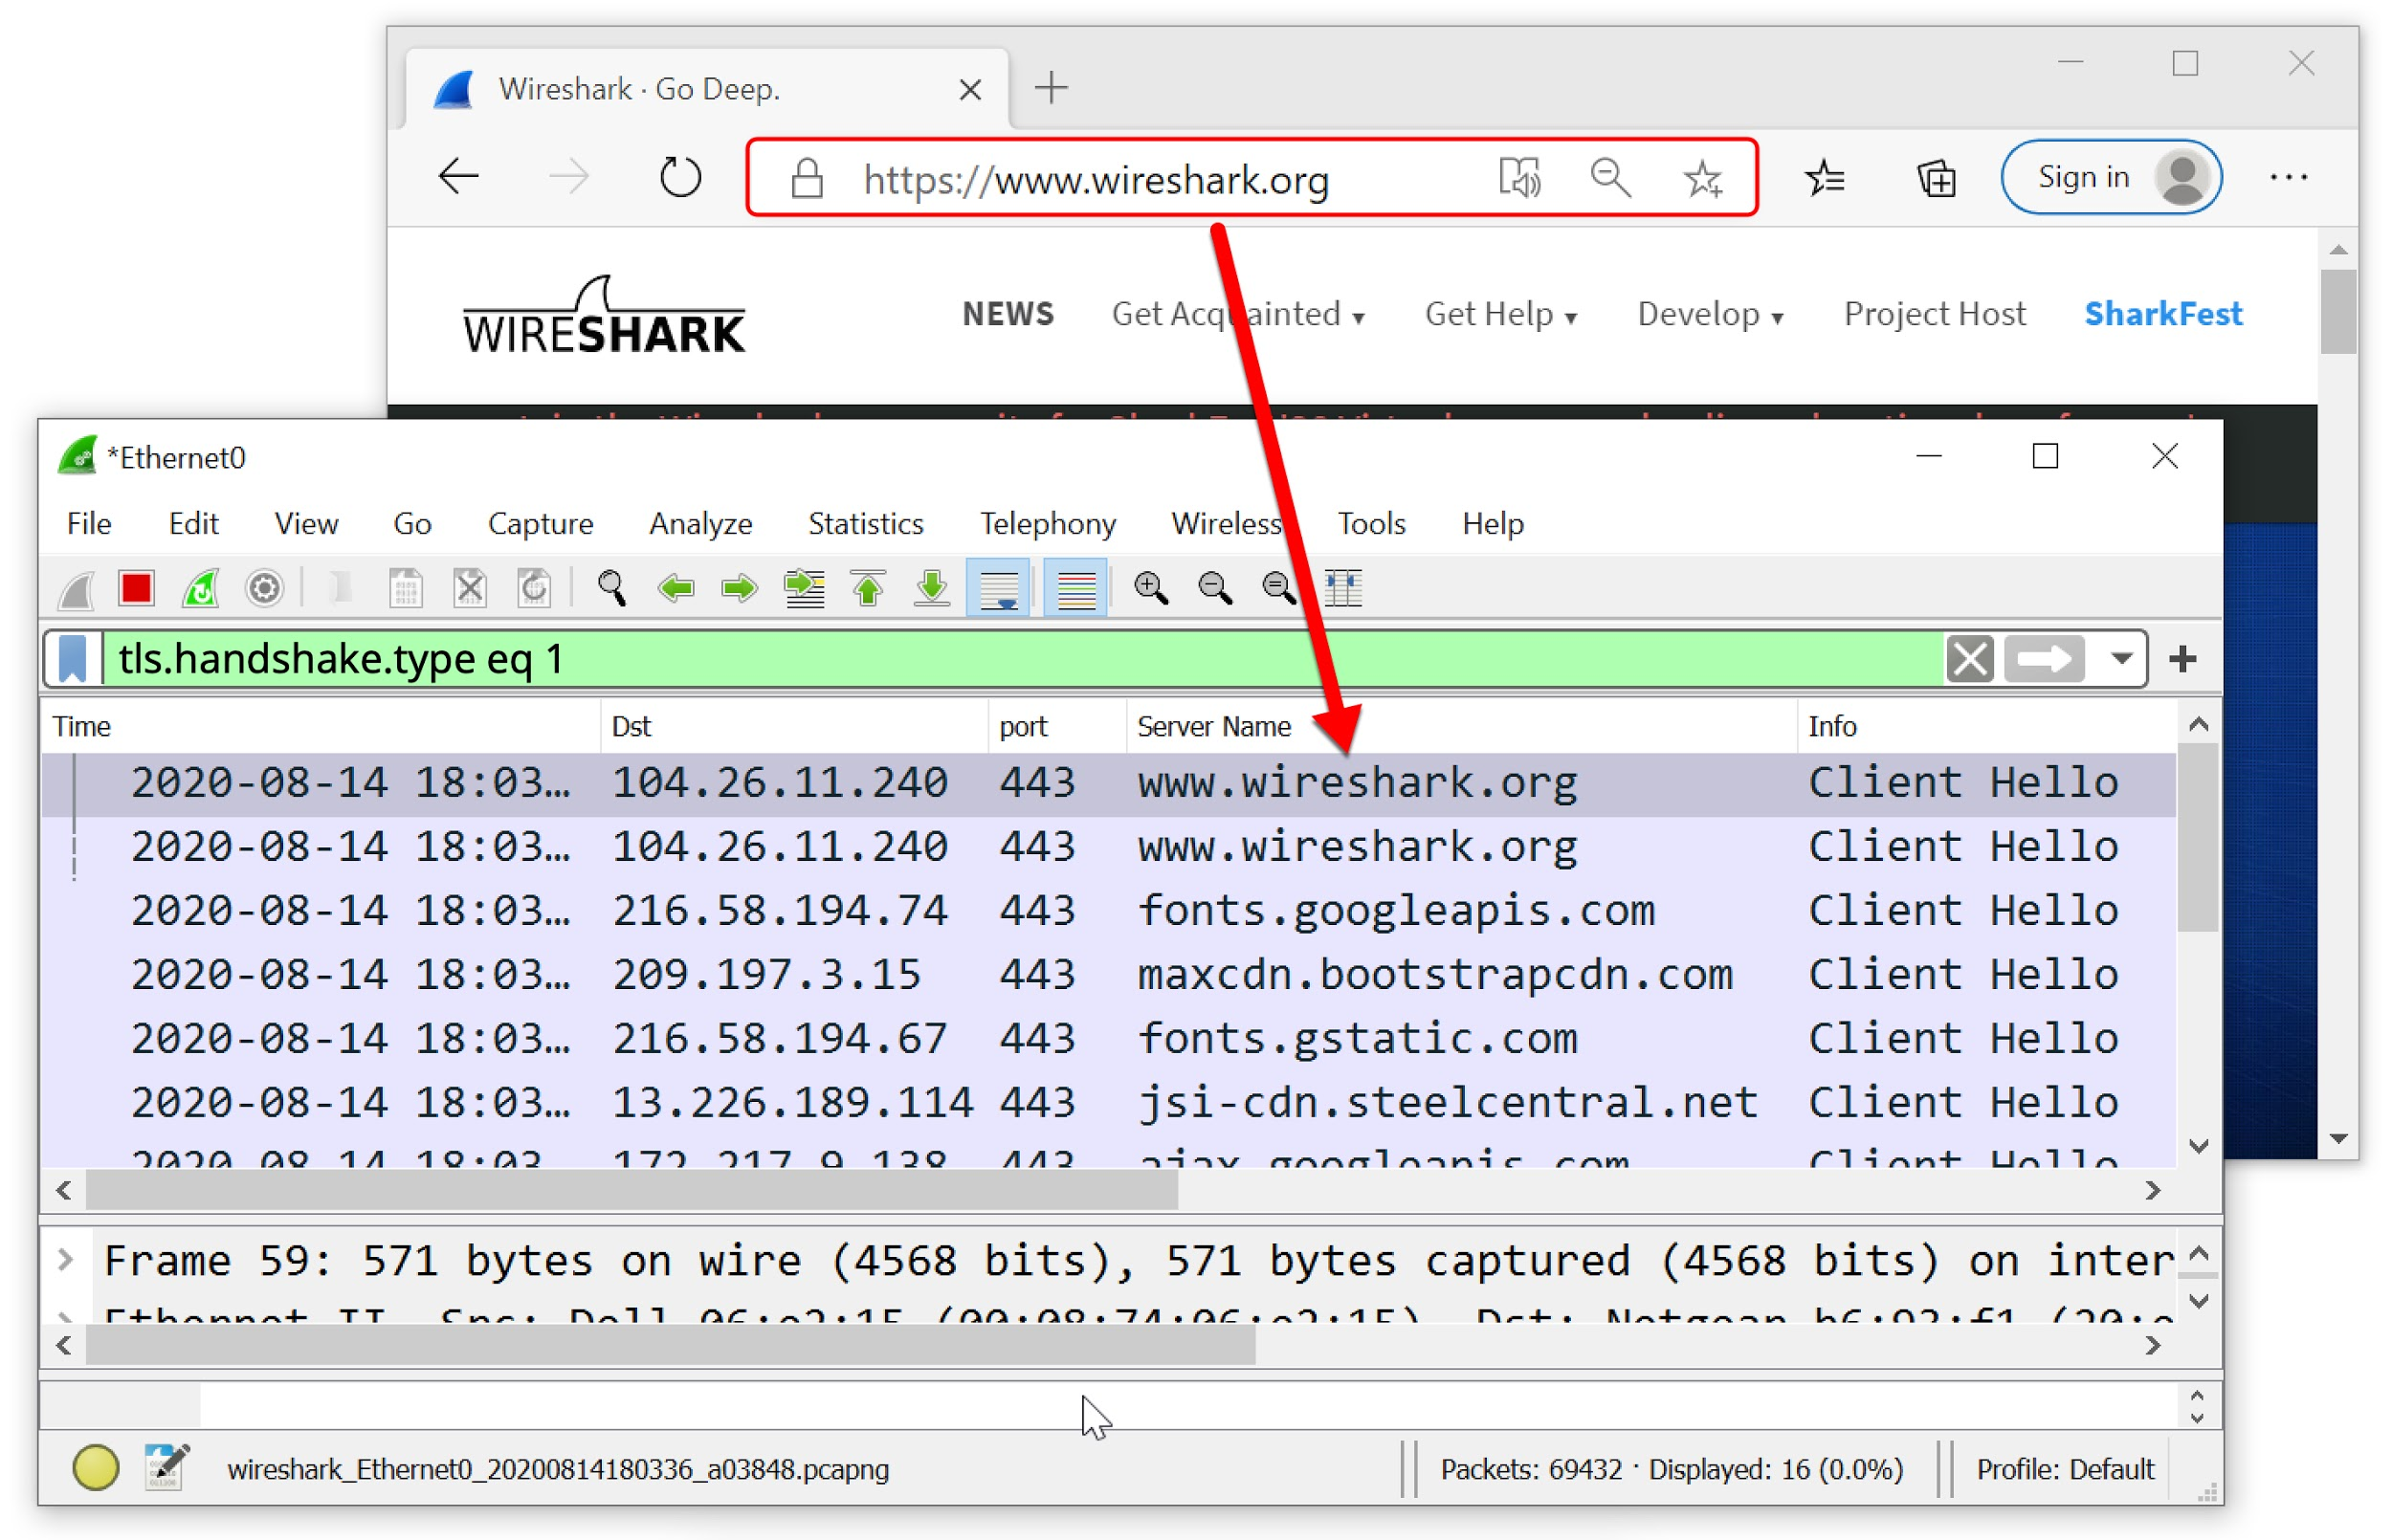 The screenshots show what is seen when viewing https://www.wireshark.org in a web browser, vs. what a pcap would show when viewed in a customized Wireshark column display.